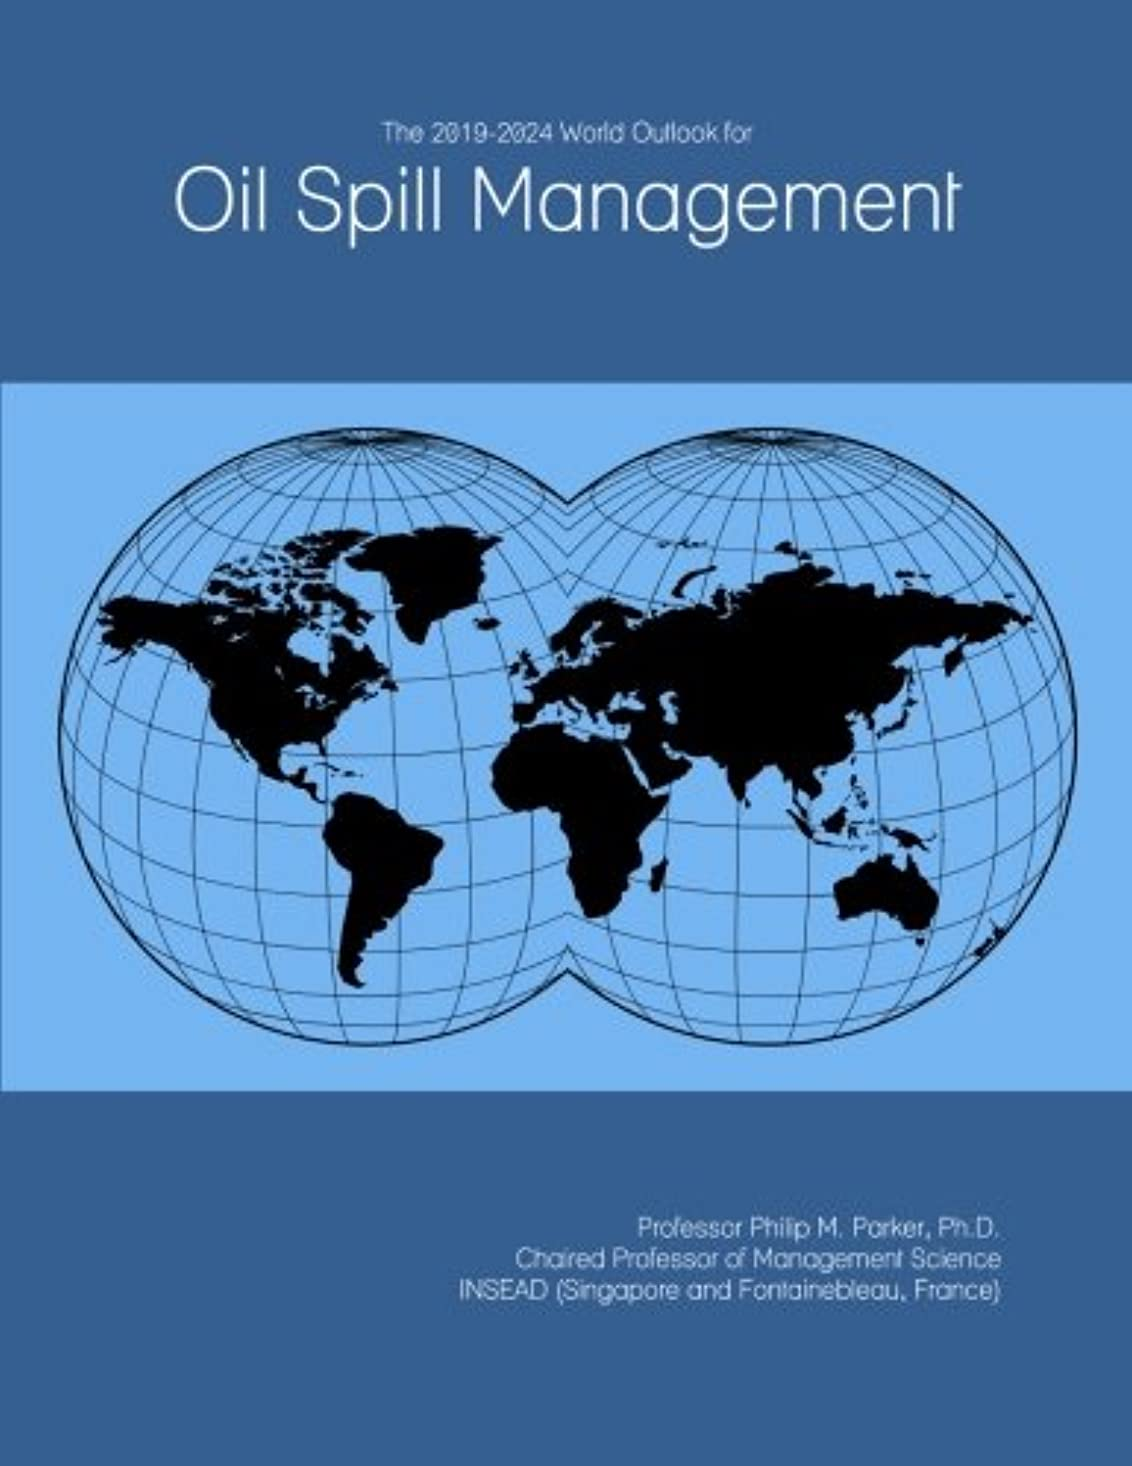 ベーシック新着ミスThe 2019-2024 World Outlook for Oil Spill Management